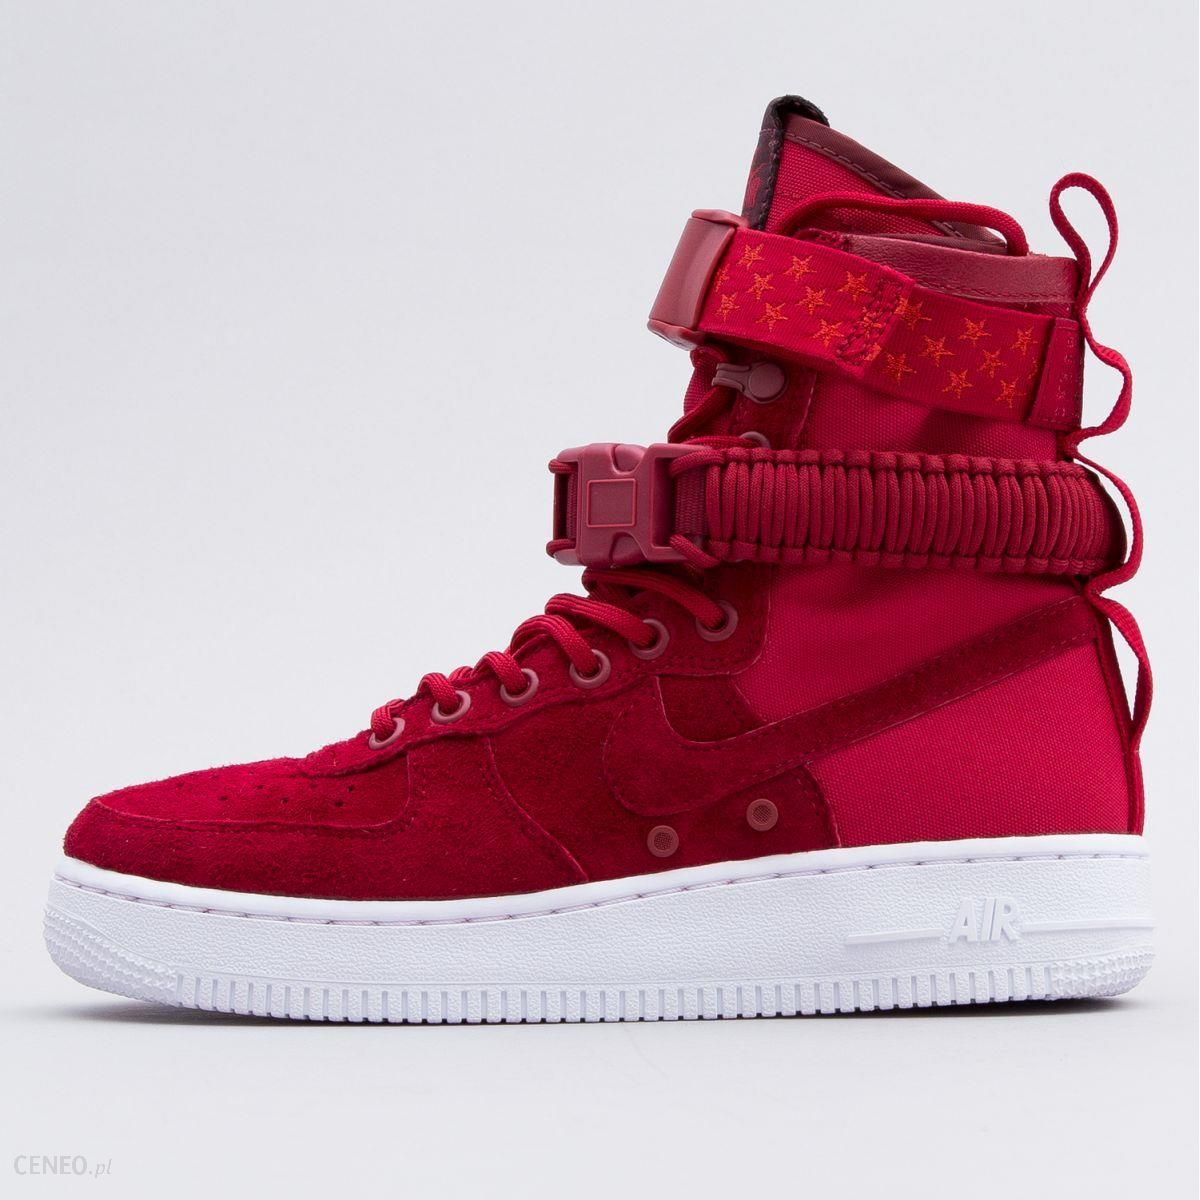 Nike WMNS SF AIR FORCE 1 857872 601 Ceny i opinie Ceneo.pl